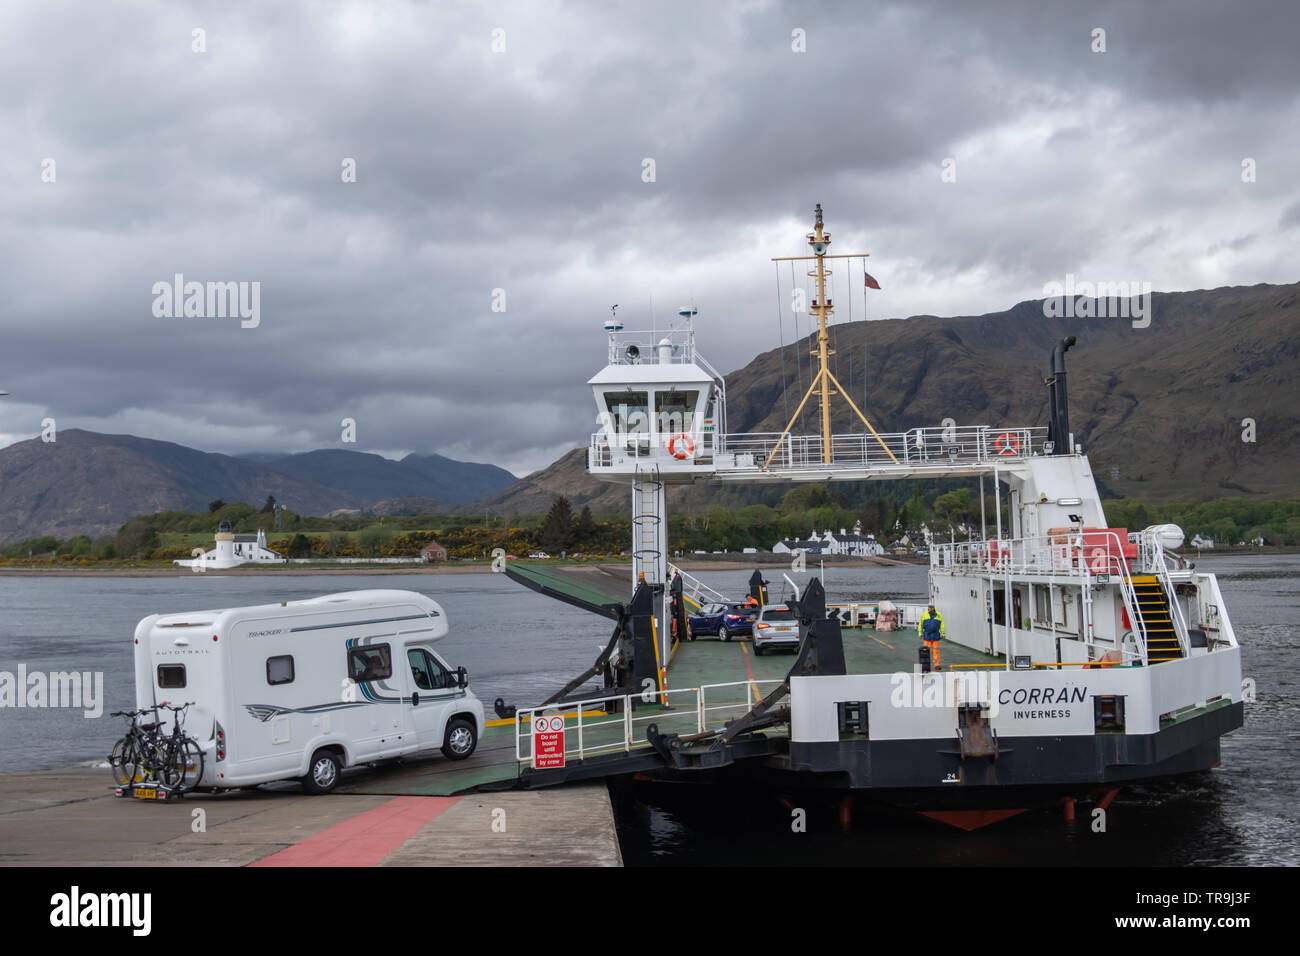 A motorhome drives onto the Calmac ferry Ardgour - Nether Lochaber known as the Corran Ferry, located south of Fort William, Scotland, UK - Stock Image